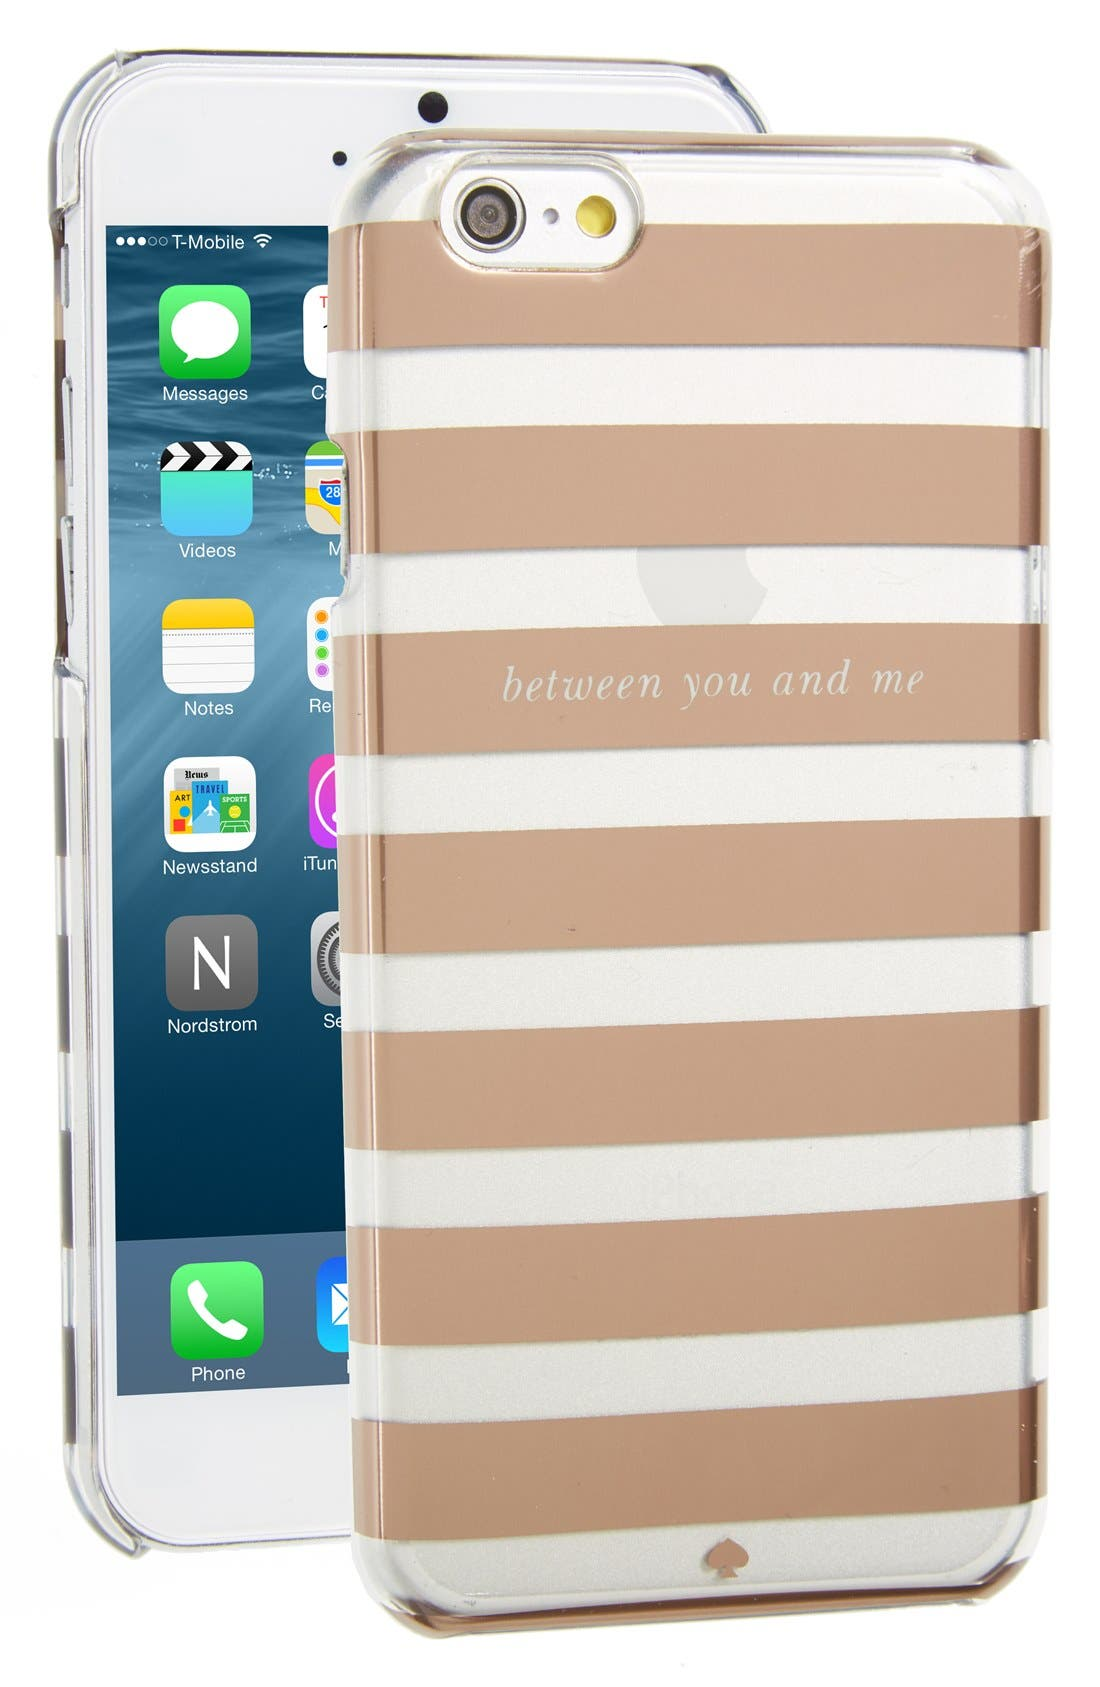 Main Image - kate spade new york 'between you and me' iPhone 6 case